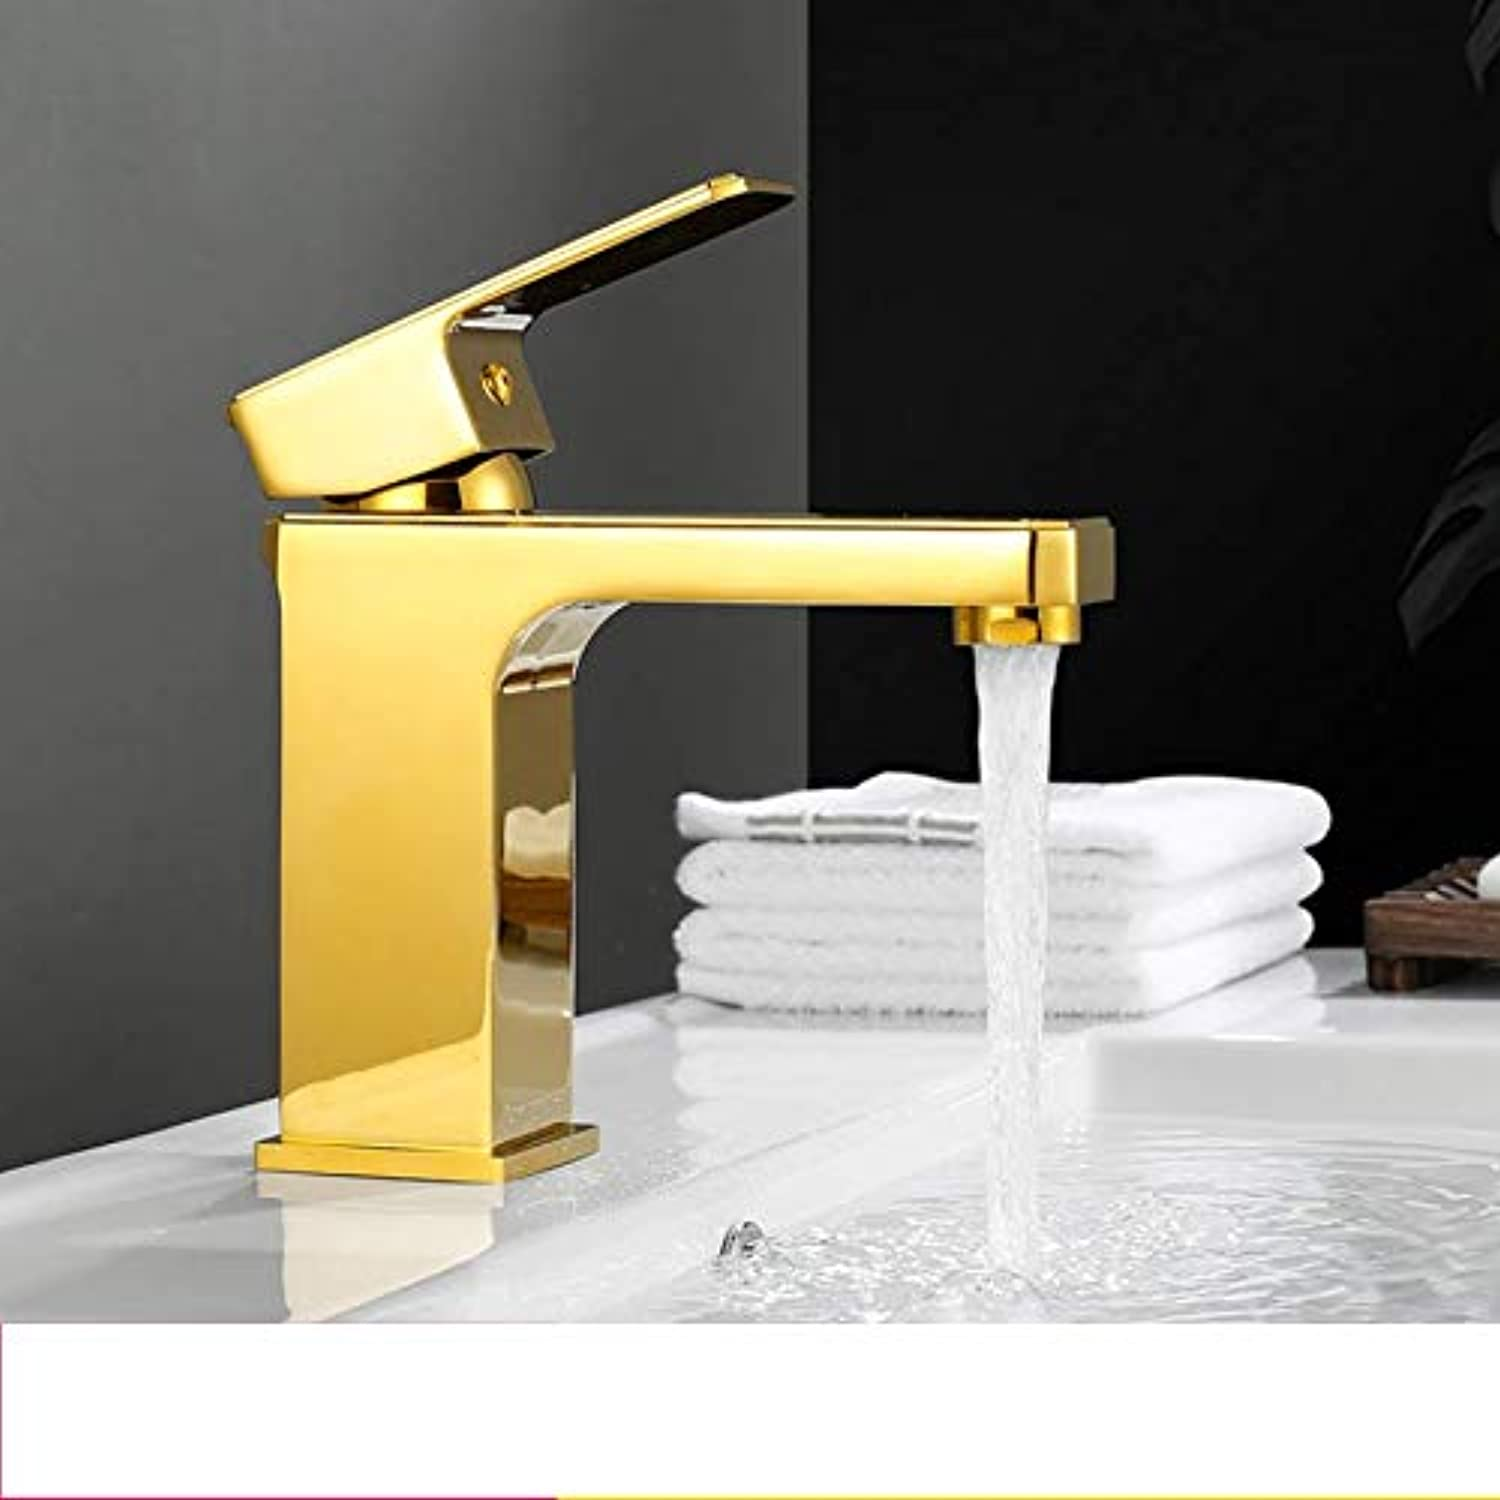 Bathroom Sink Taps Faucet gold Copper Wash Basin Faucet Single Hole Basin Hot and Cold Table Up and Down Wash Basin Square Faucet